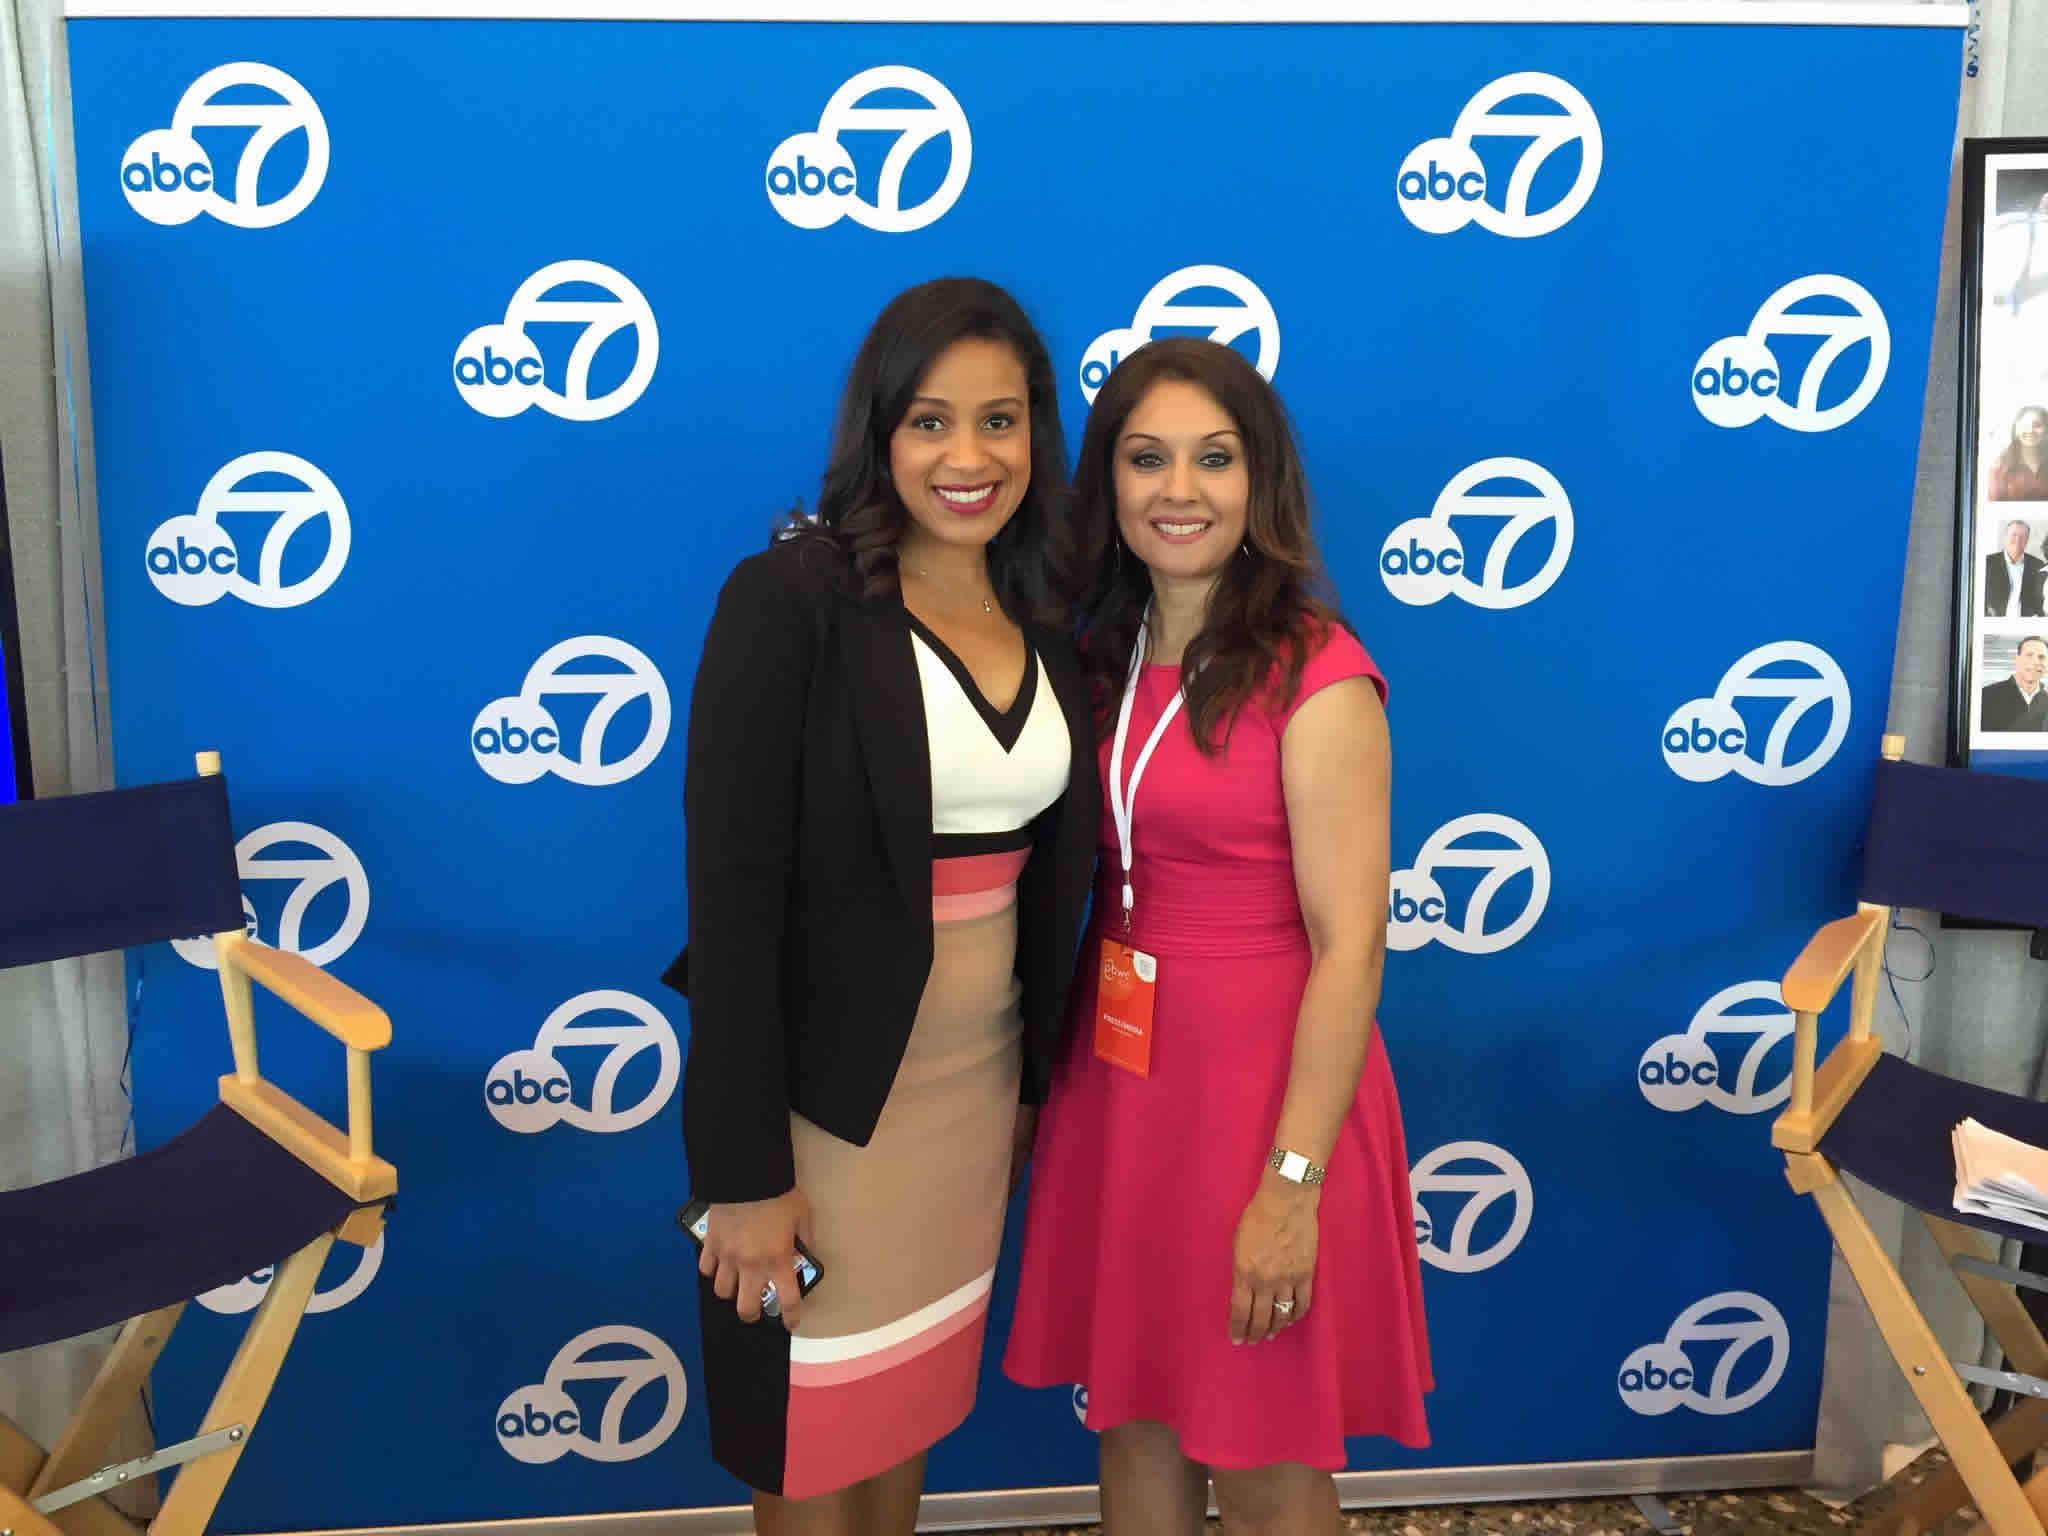 "<div class=""meta image-caption""><div class=""origin-logo origin-image none""><span>none</span></div><span class=""caption-text"">ABC7's Ama Dates and Sandhya Patel at the Professional BusinessWomen of California Conference in San Francisco on March, 28, 2017. (KGO-TV)</span></div>"